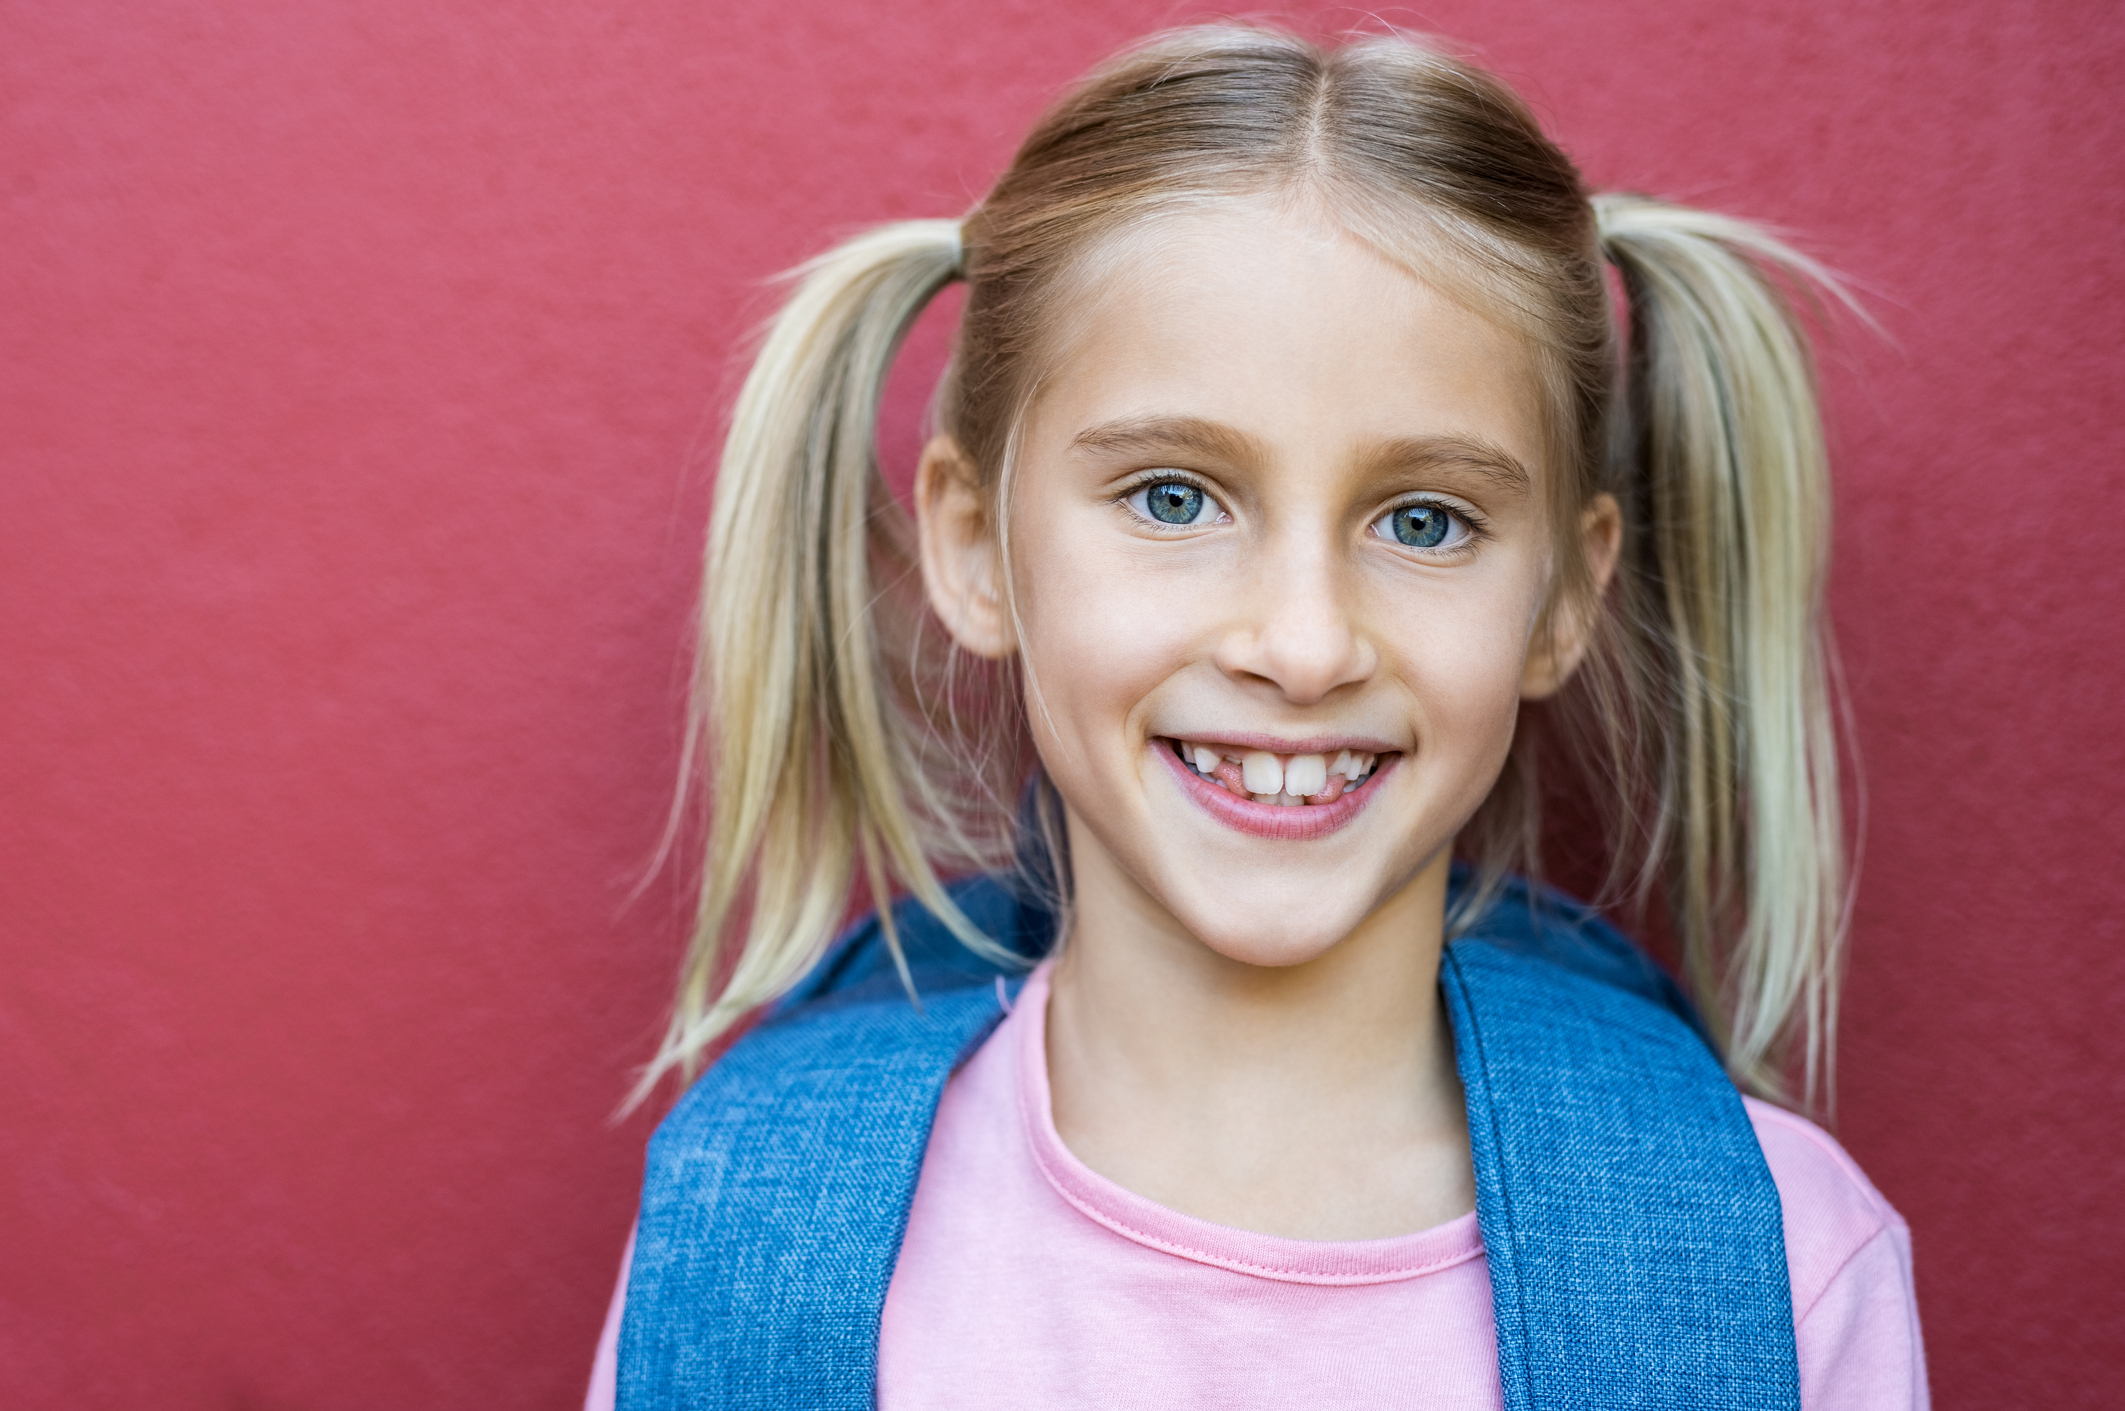 Help Protect Protruding Teeth